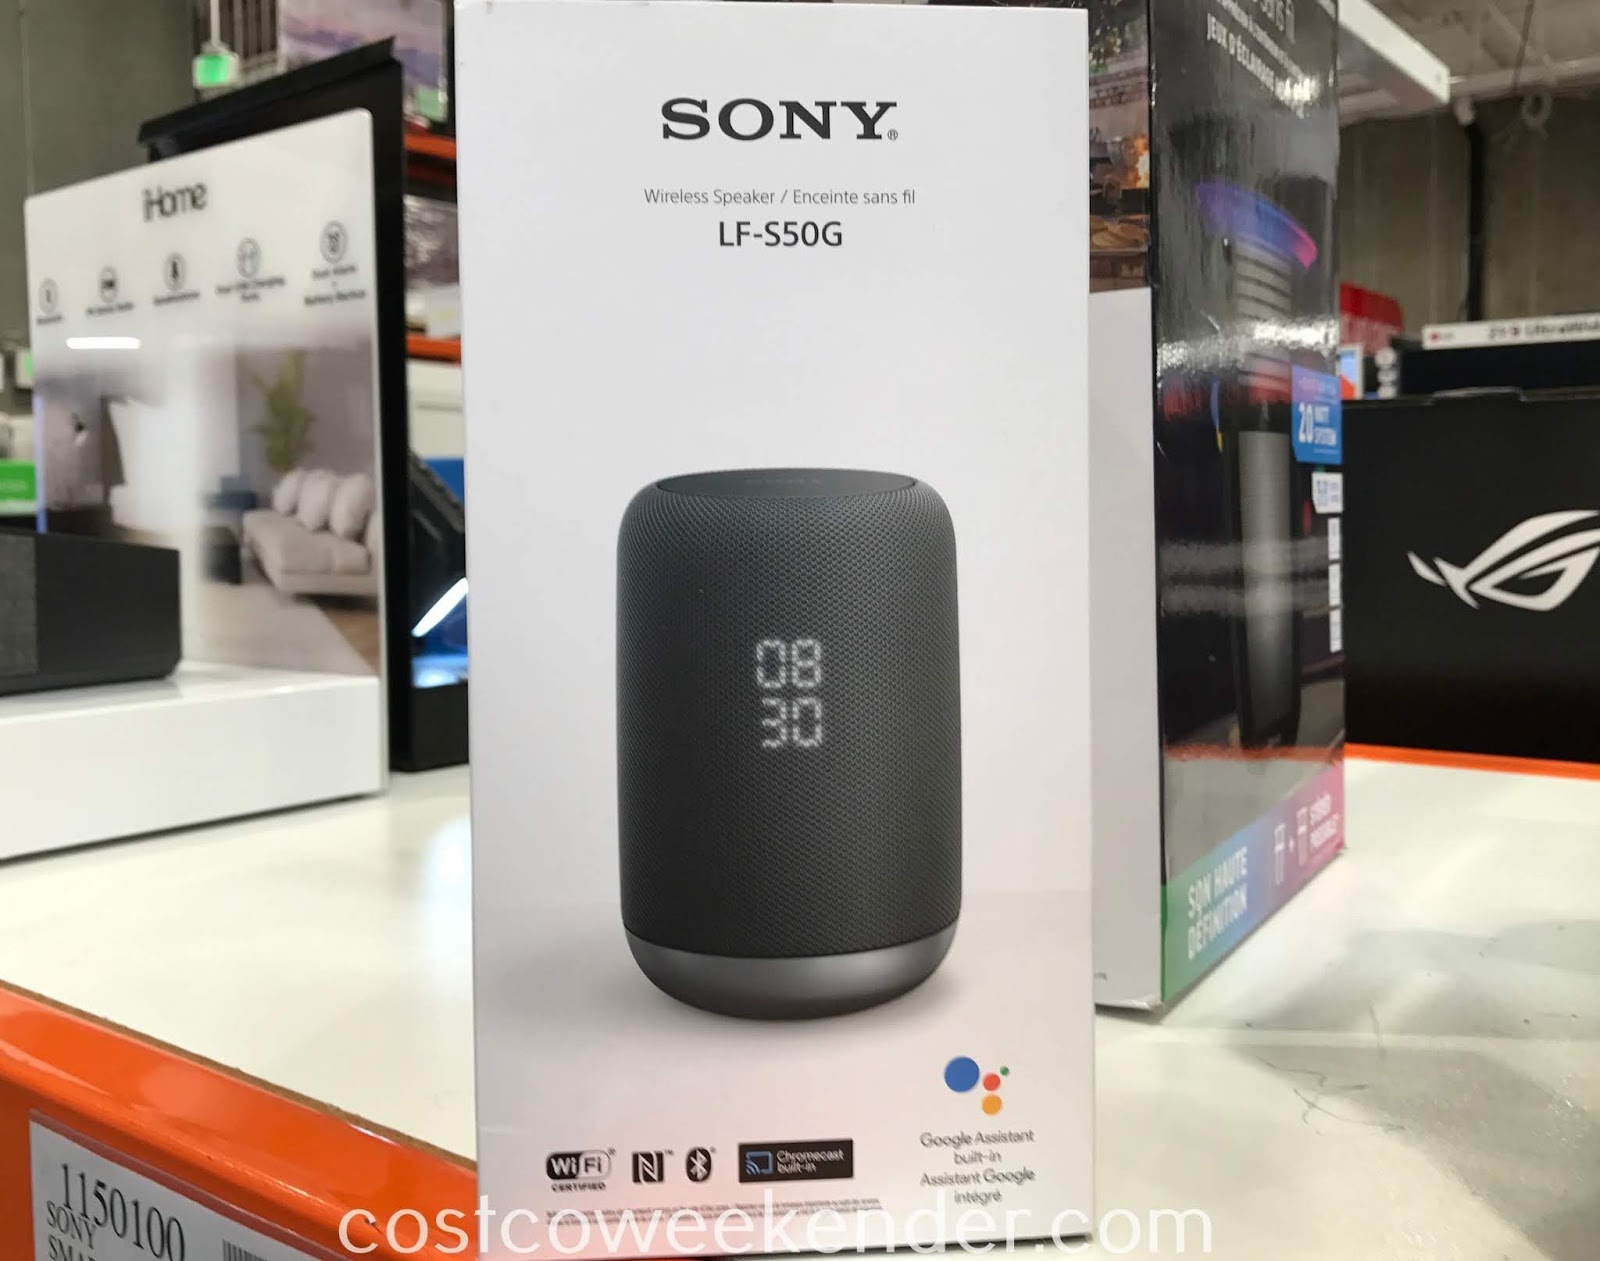 You get powerful sound in a small package with the Sony Smart Voice Wireless Speaker LF-S50G